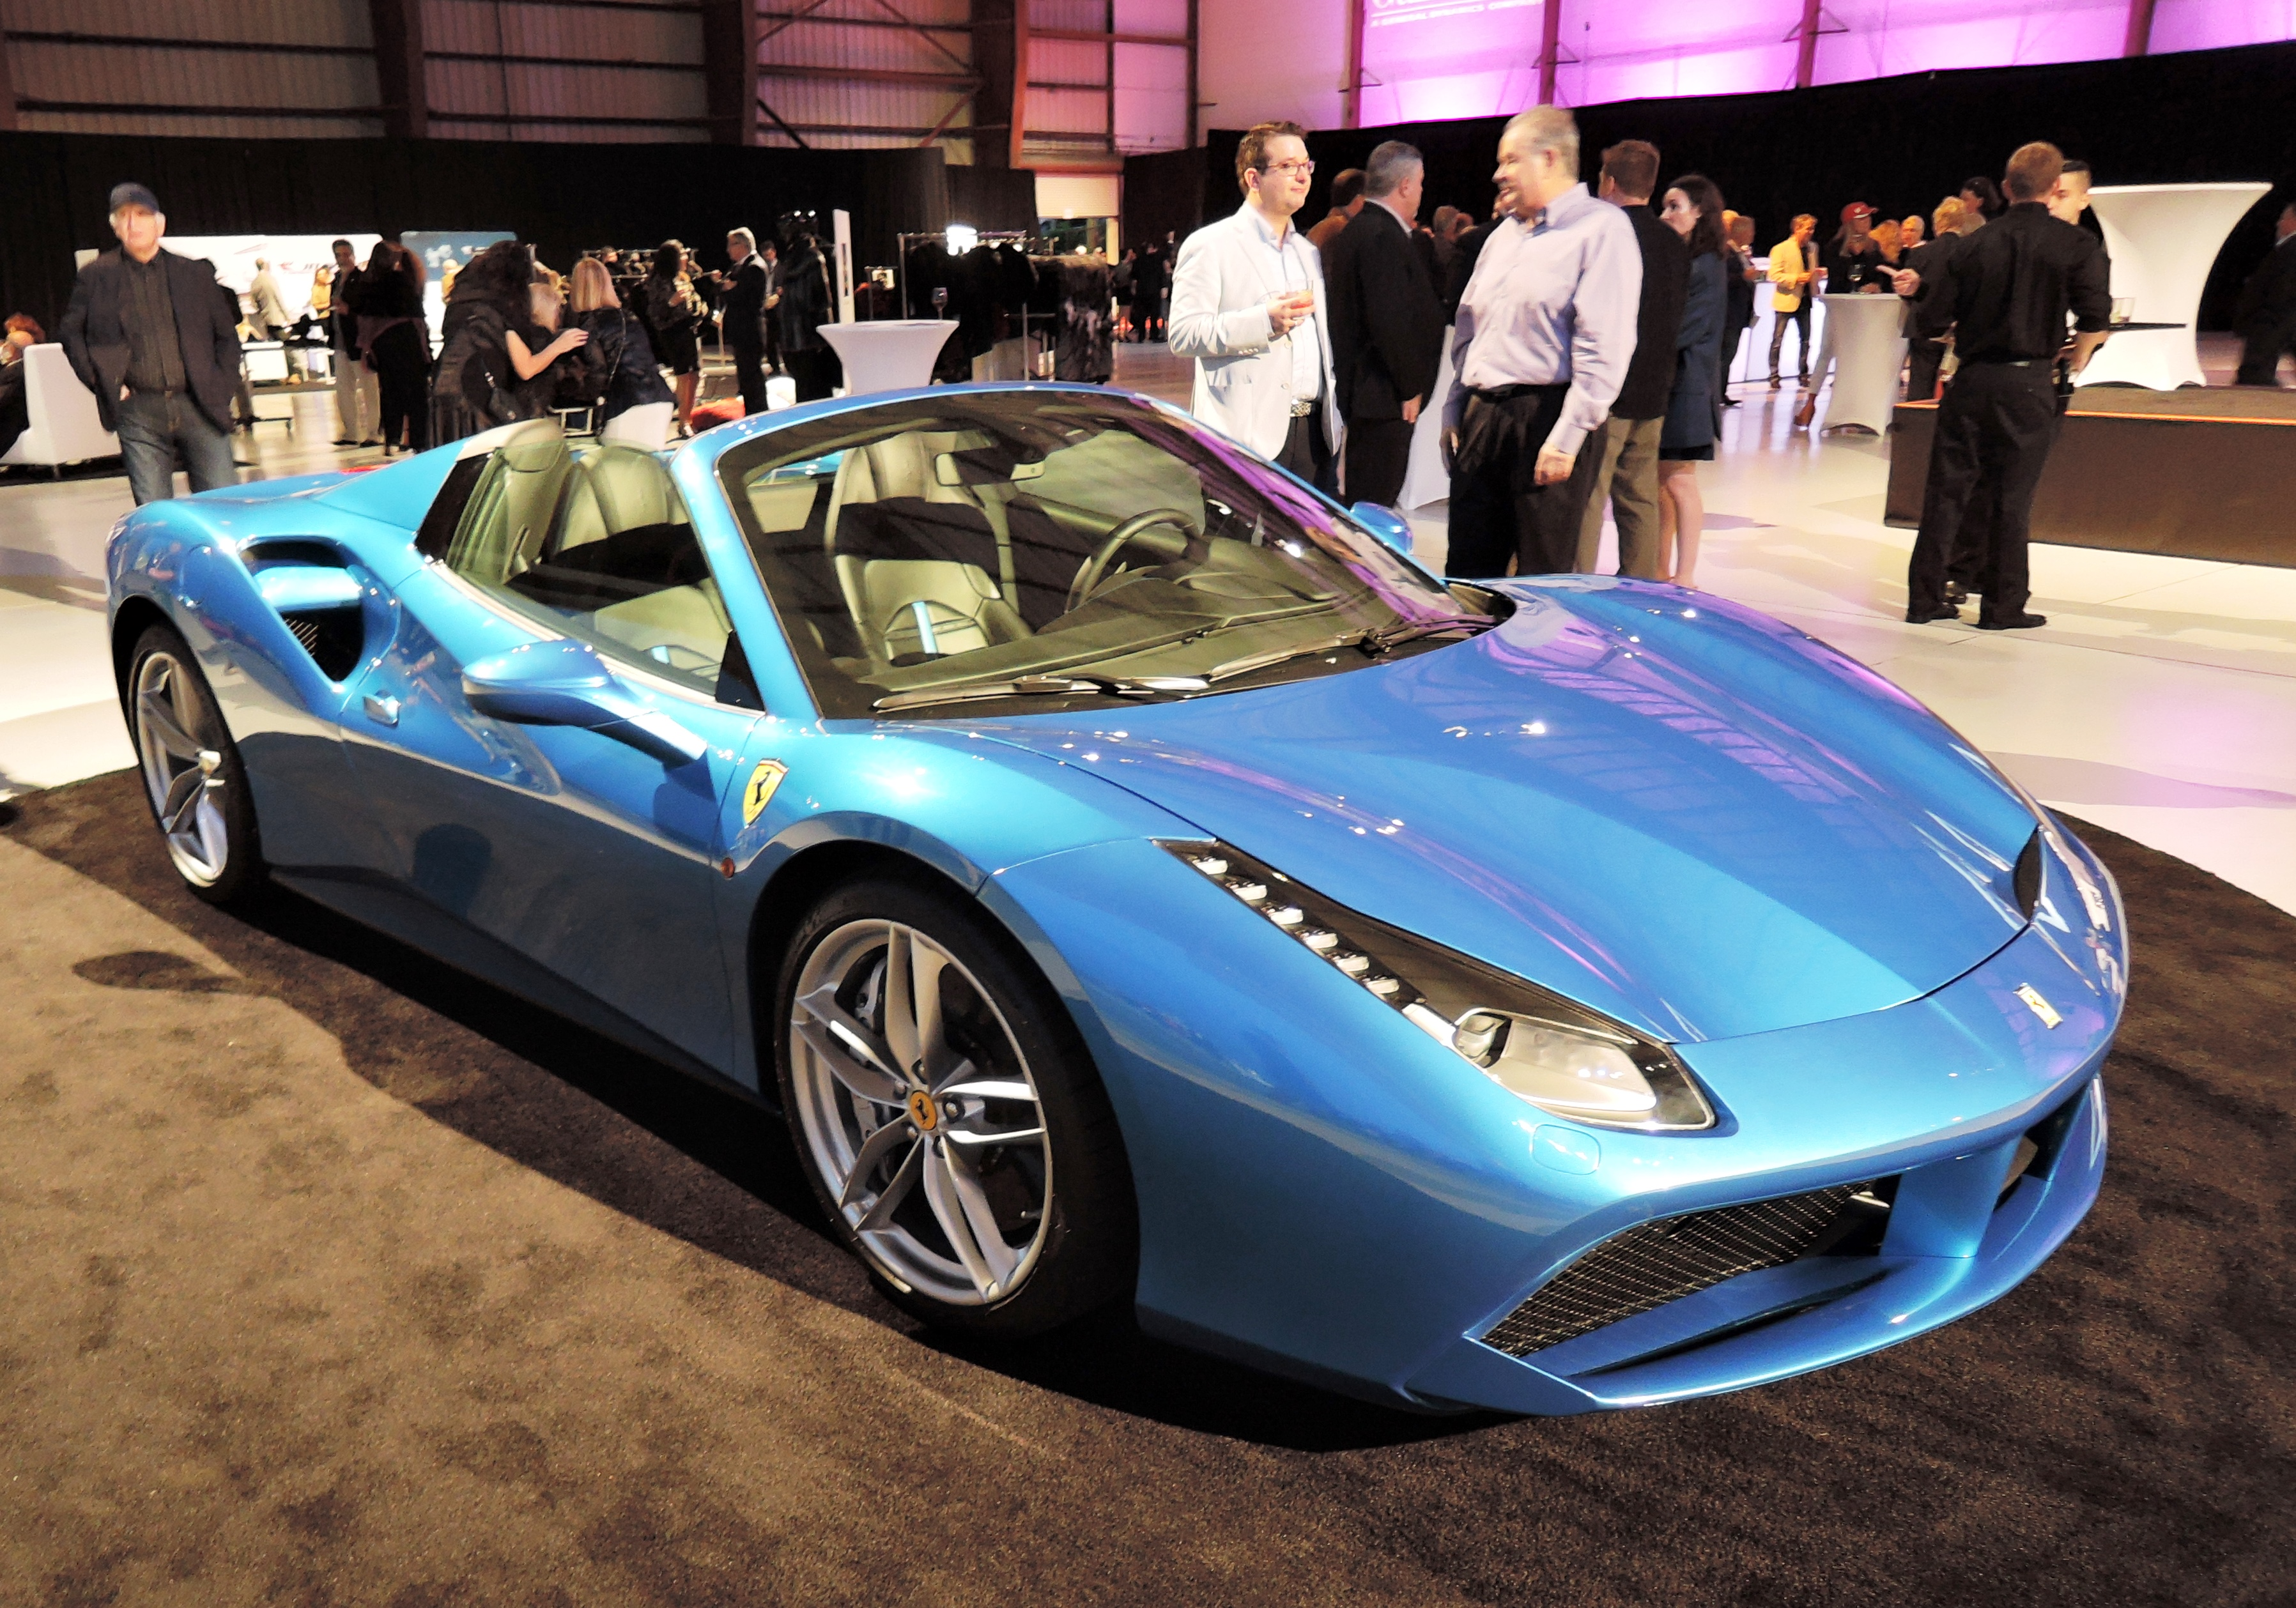 blu corsa ferrari 488 spider - jet center reception